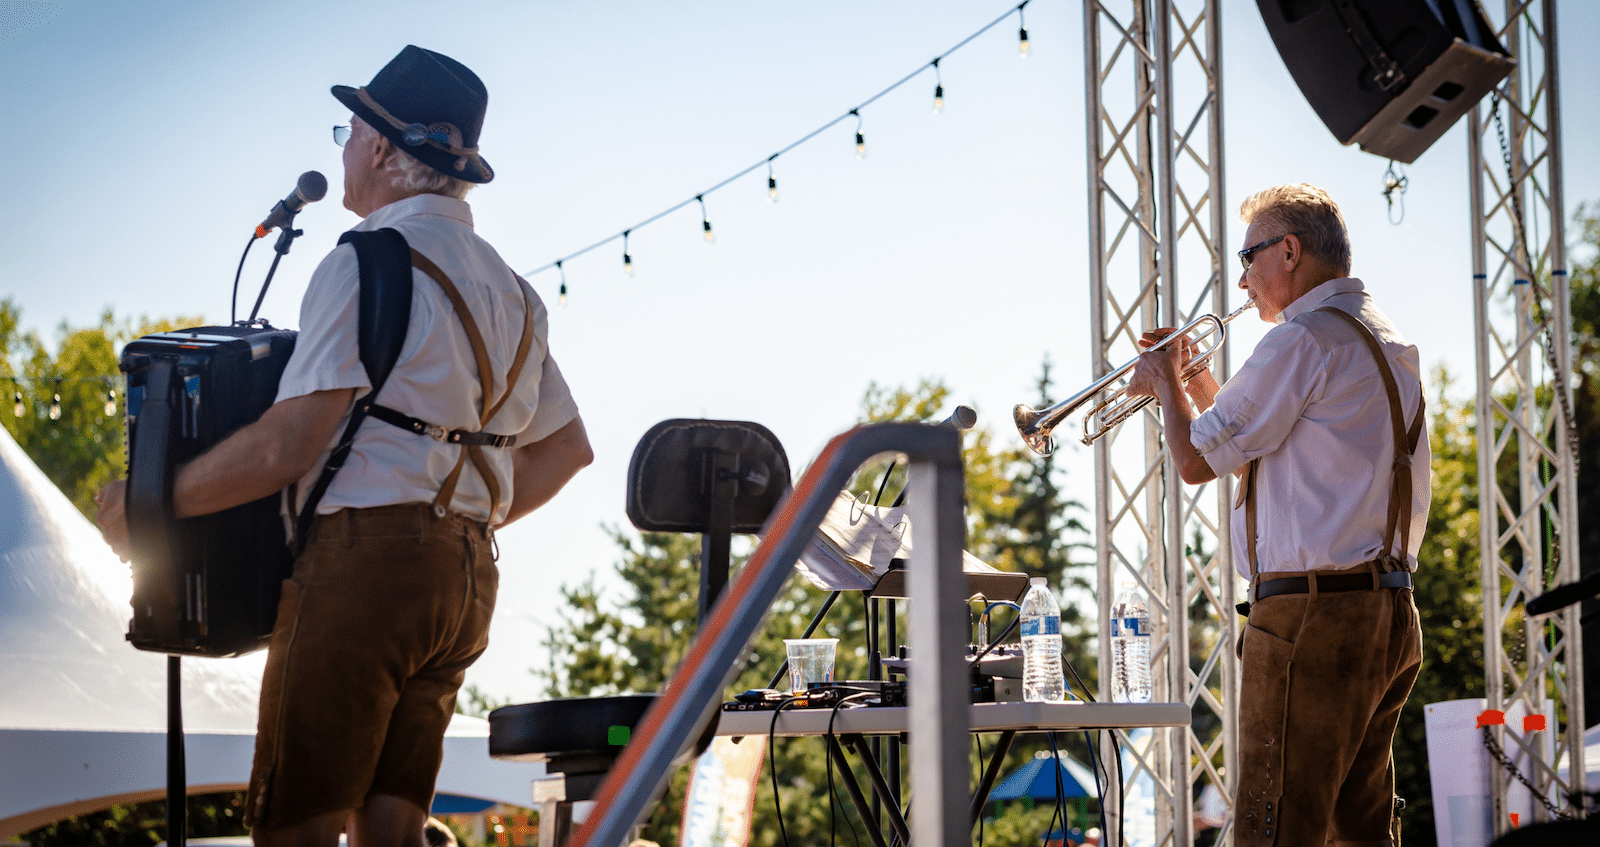 Image of bands playing at Parker Oktoberfest in Colorado